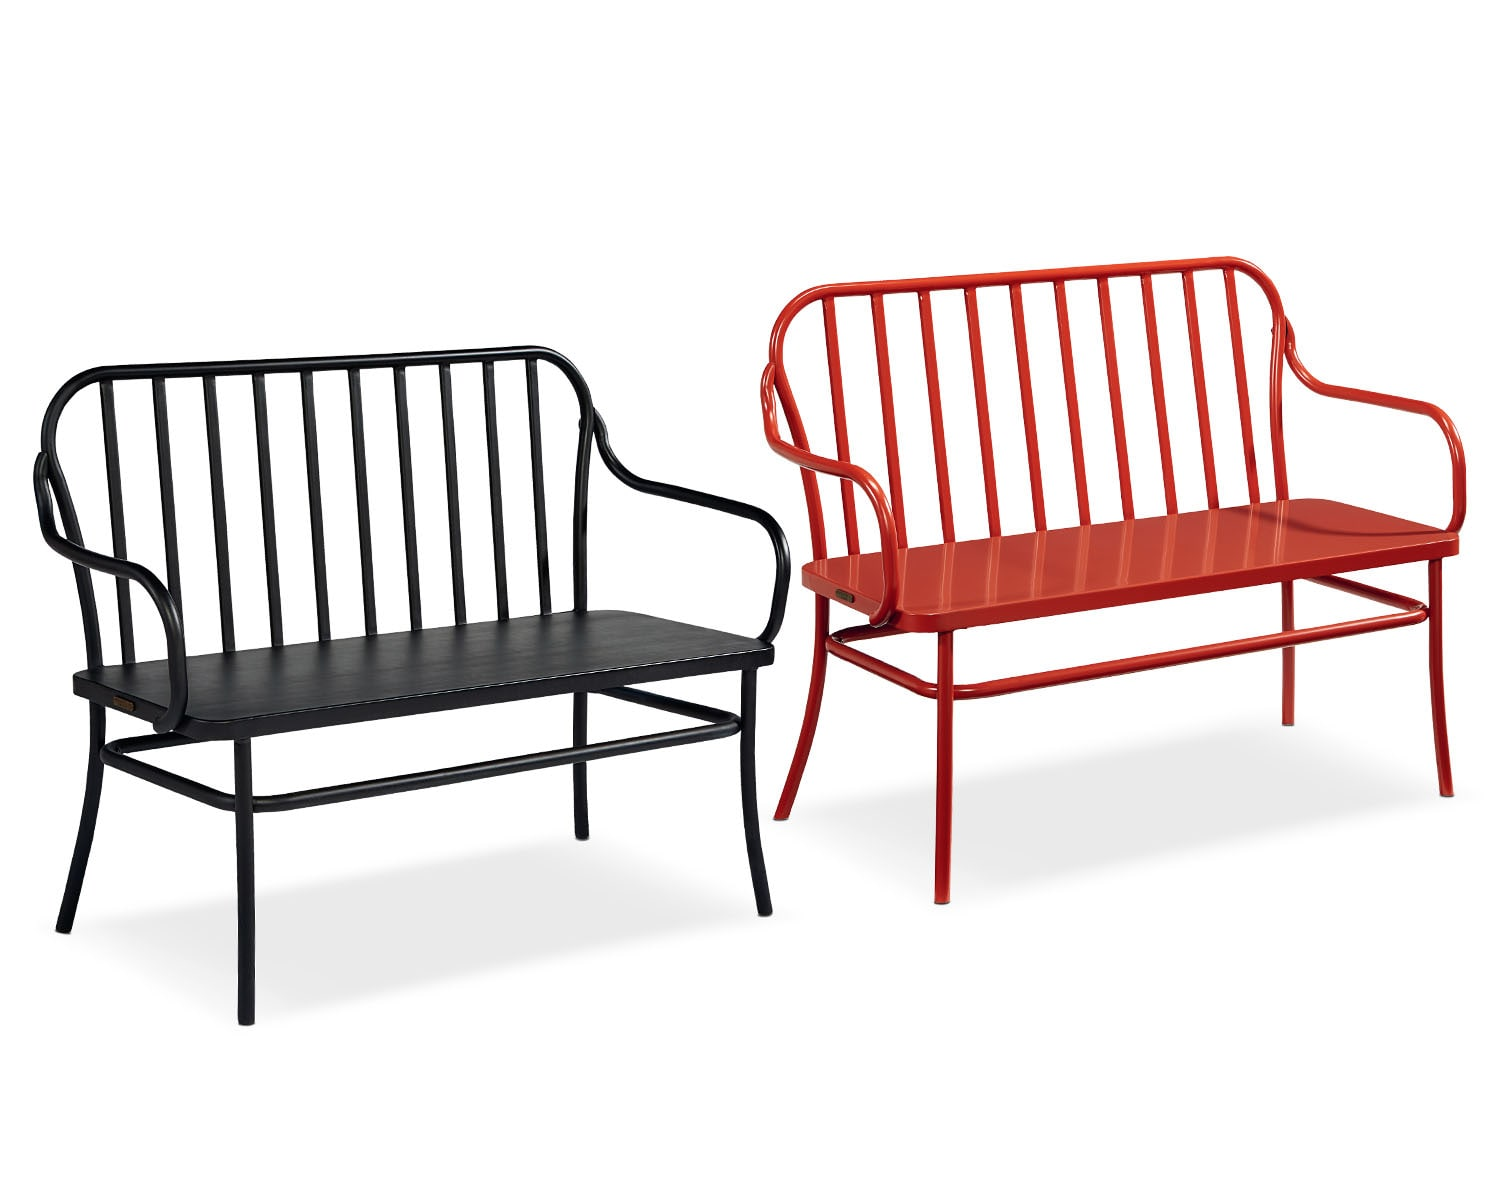 The Park Bench Collection